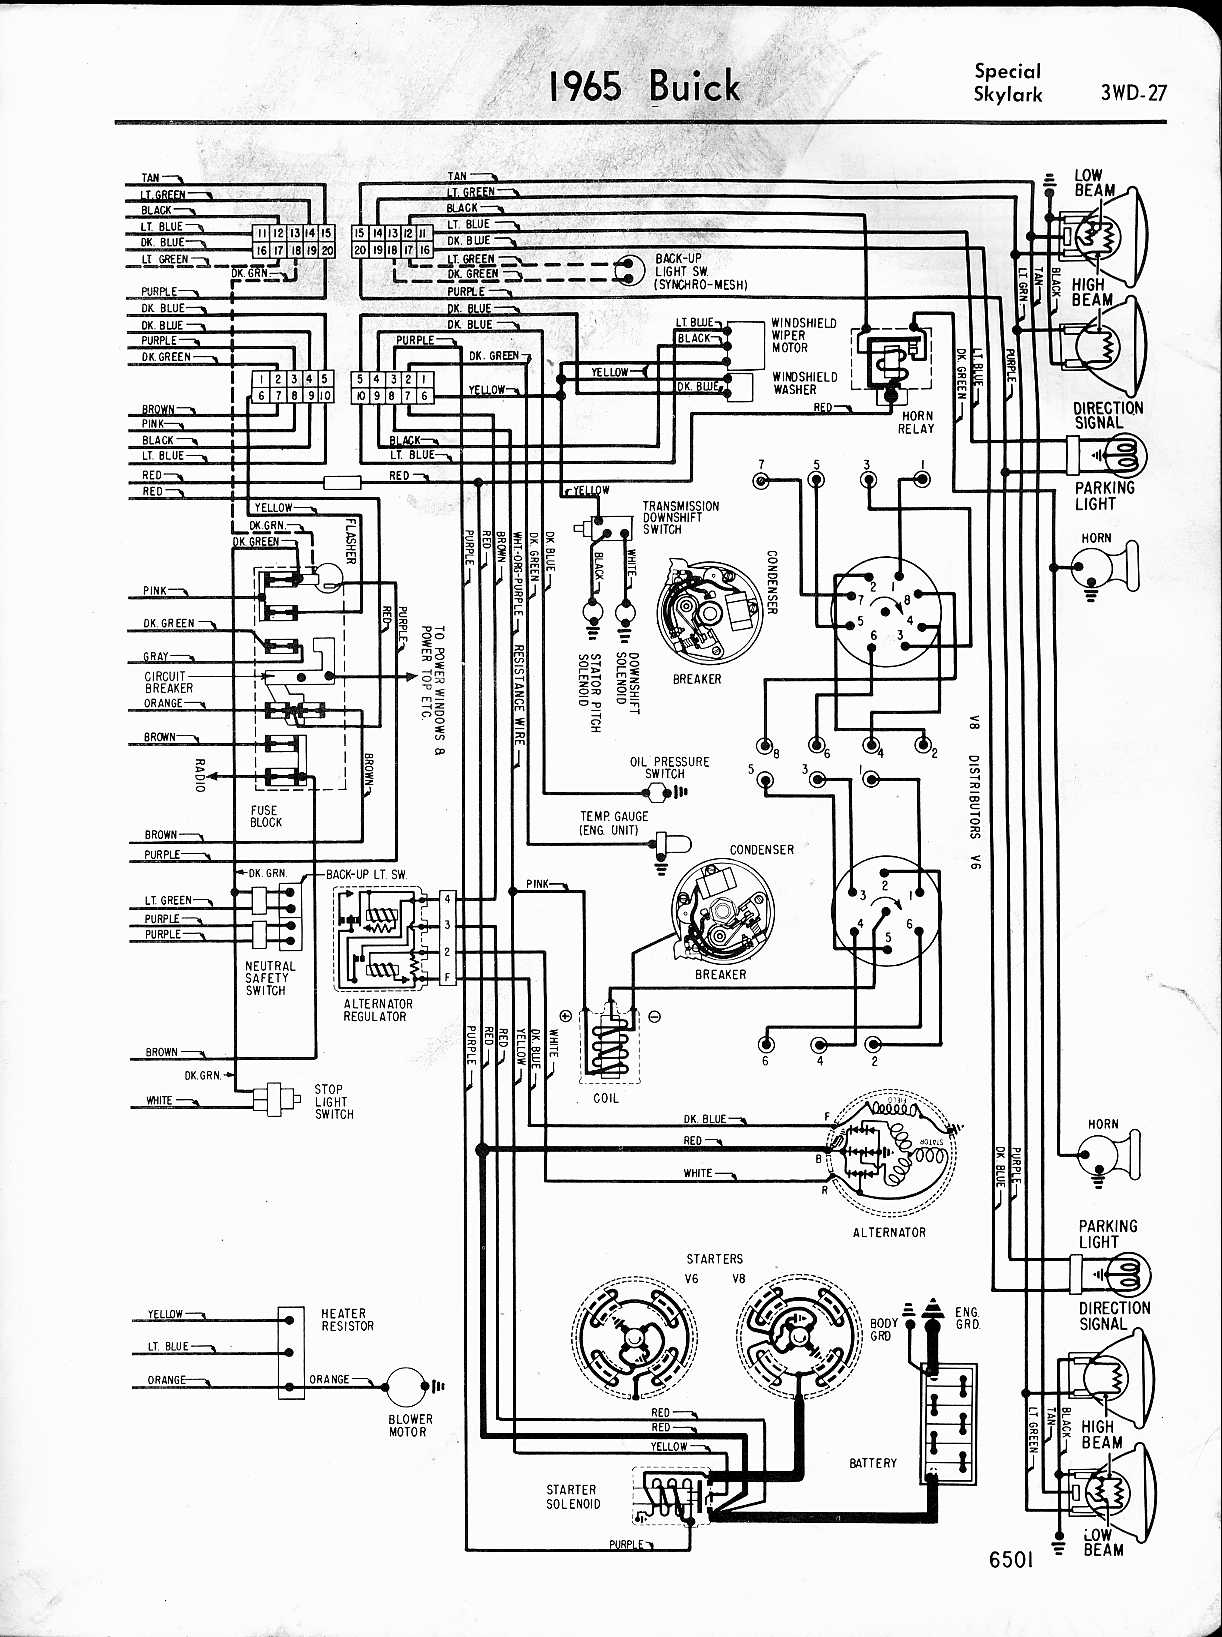 Buick Wiring Diagrams 1957 1965 2002 Jeep Wrangler Turn Signal Special Skylark Right Half